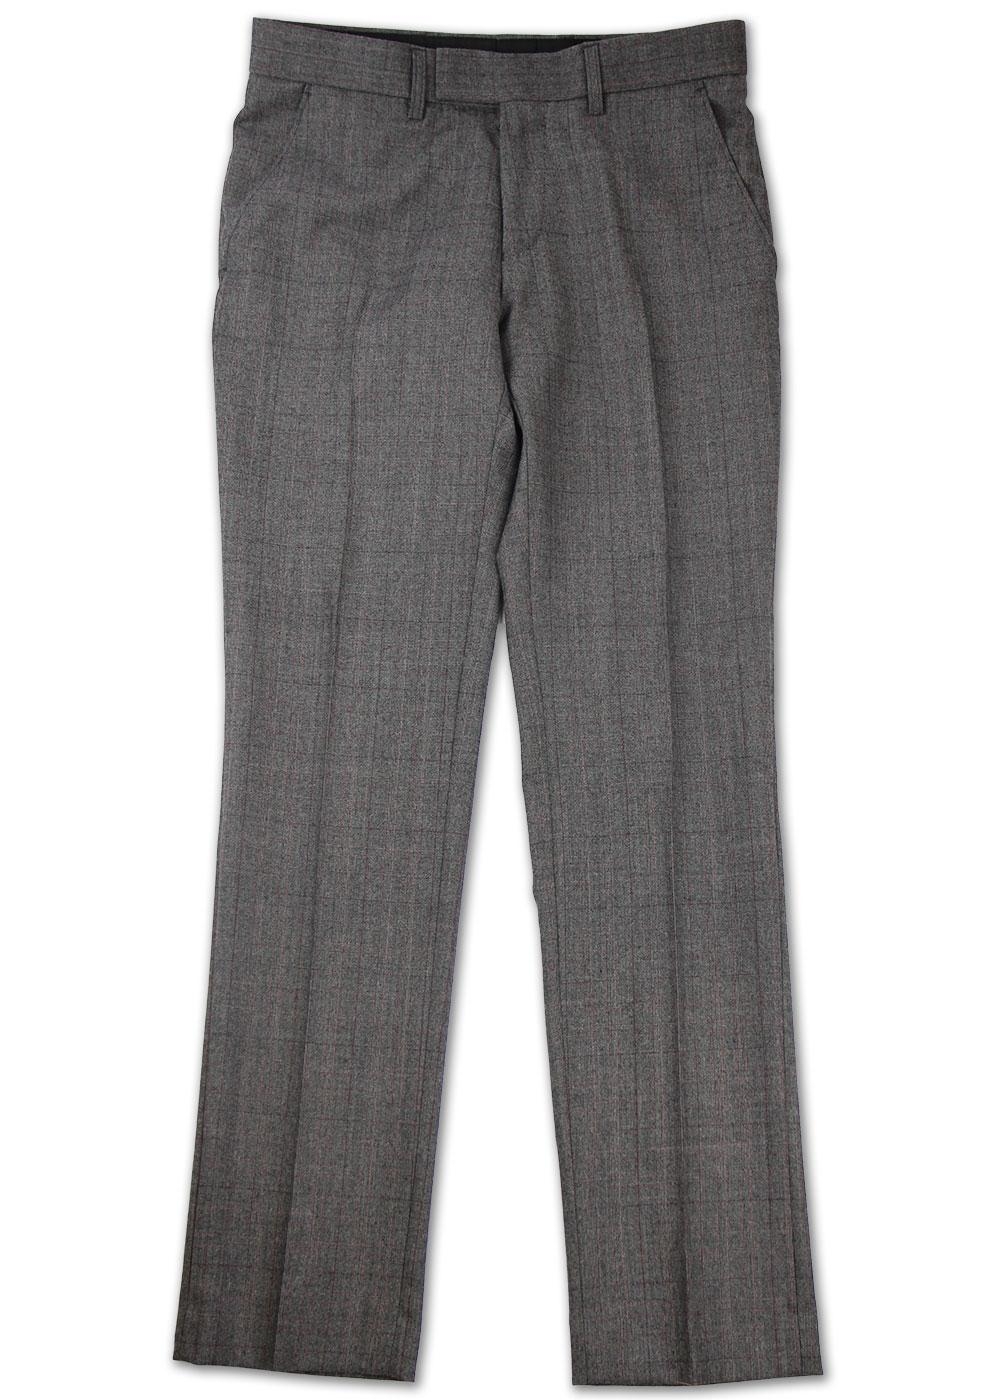 Redford MADCAP ENGLAND Mod Check Suit Trousers